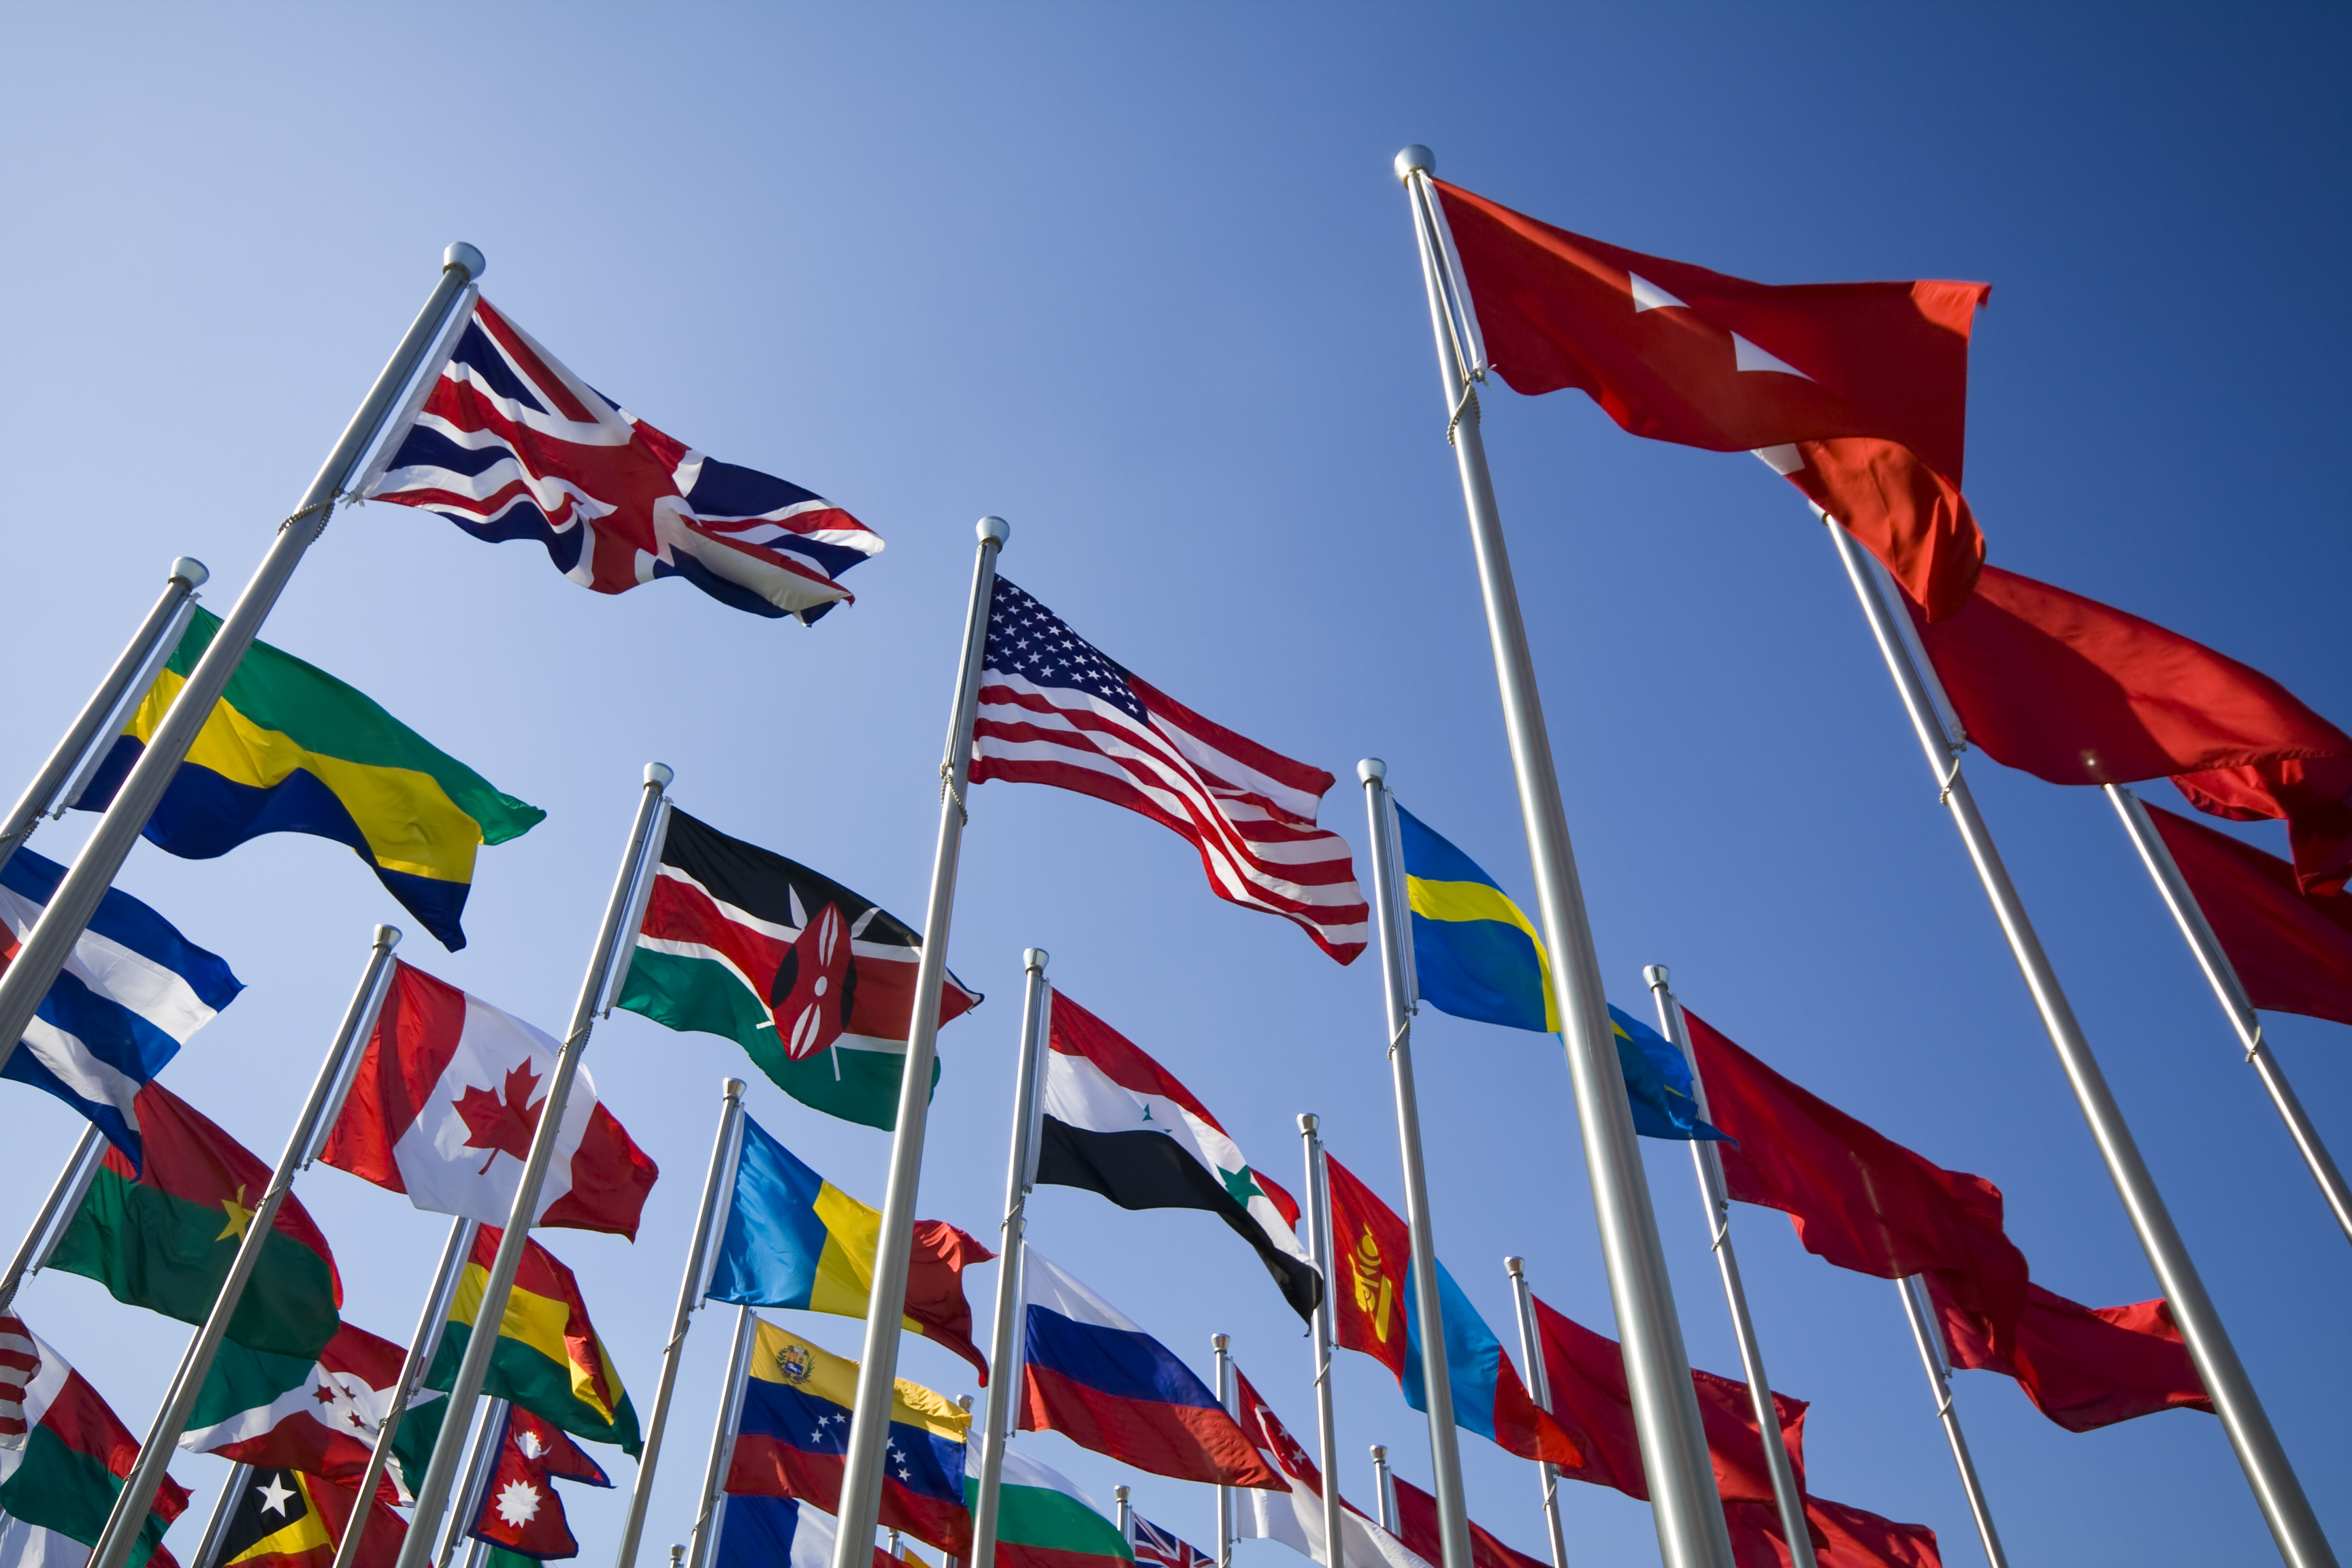 International flags (FATCA)